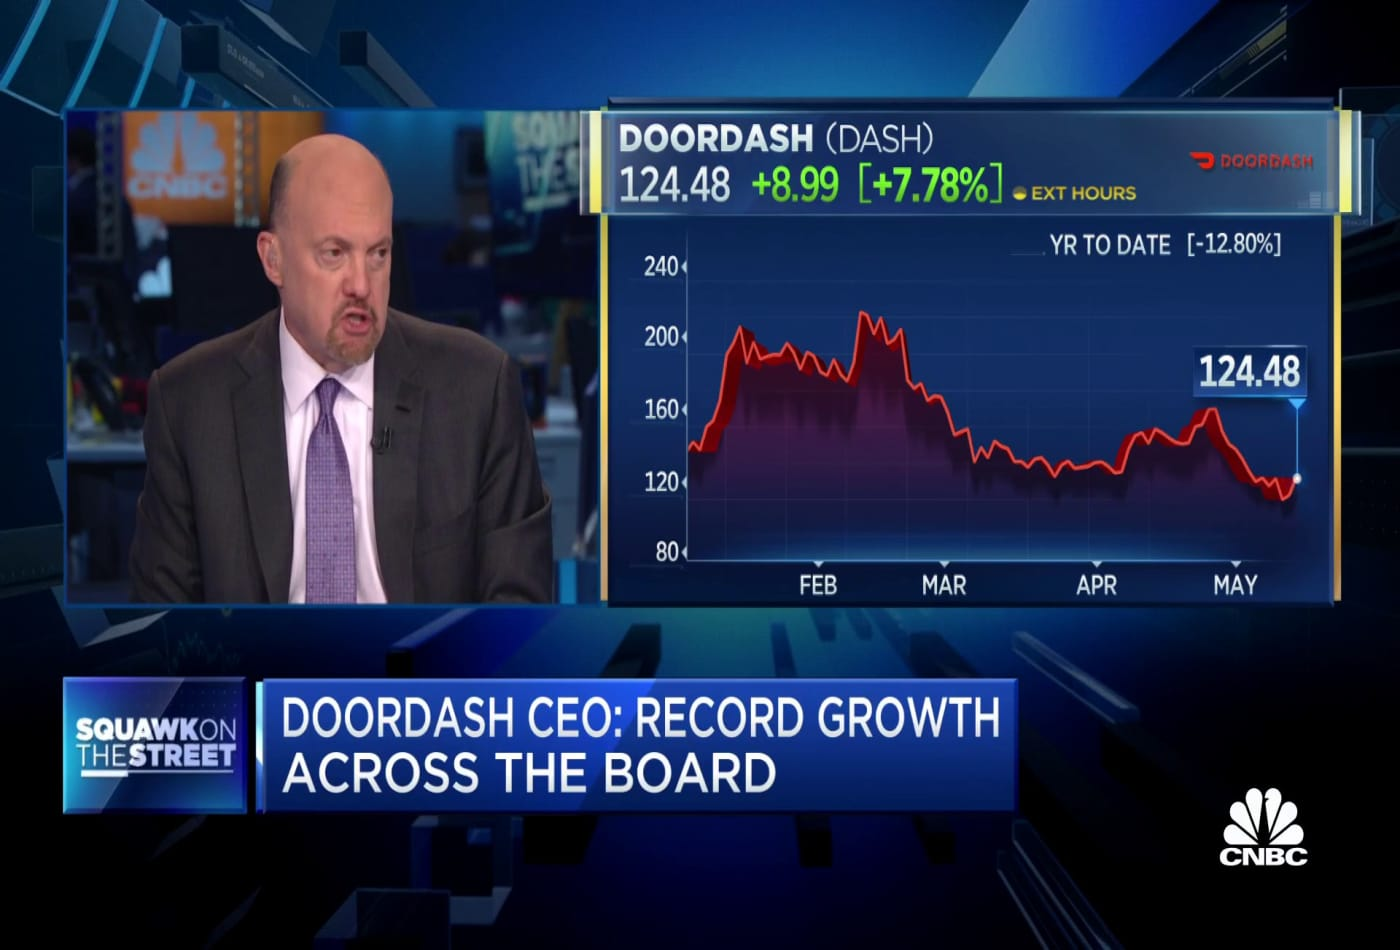 Jim Cramer reacts to DoorDash's earnings and outlook